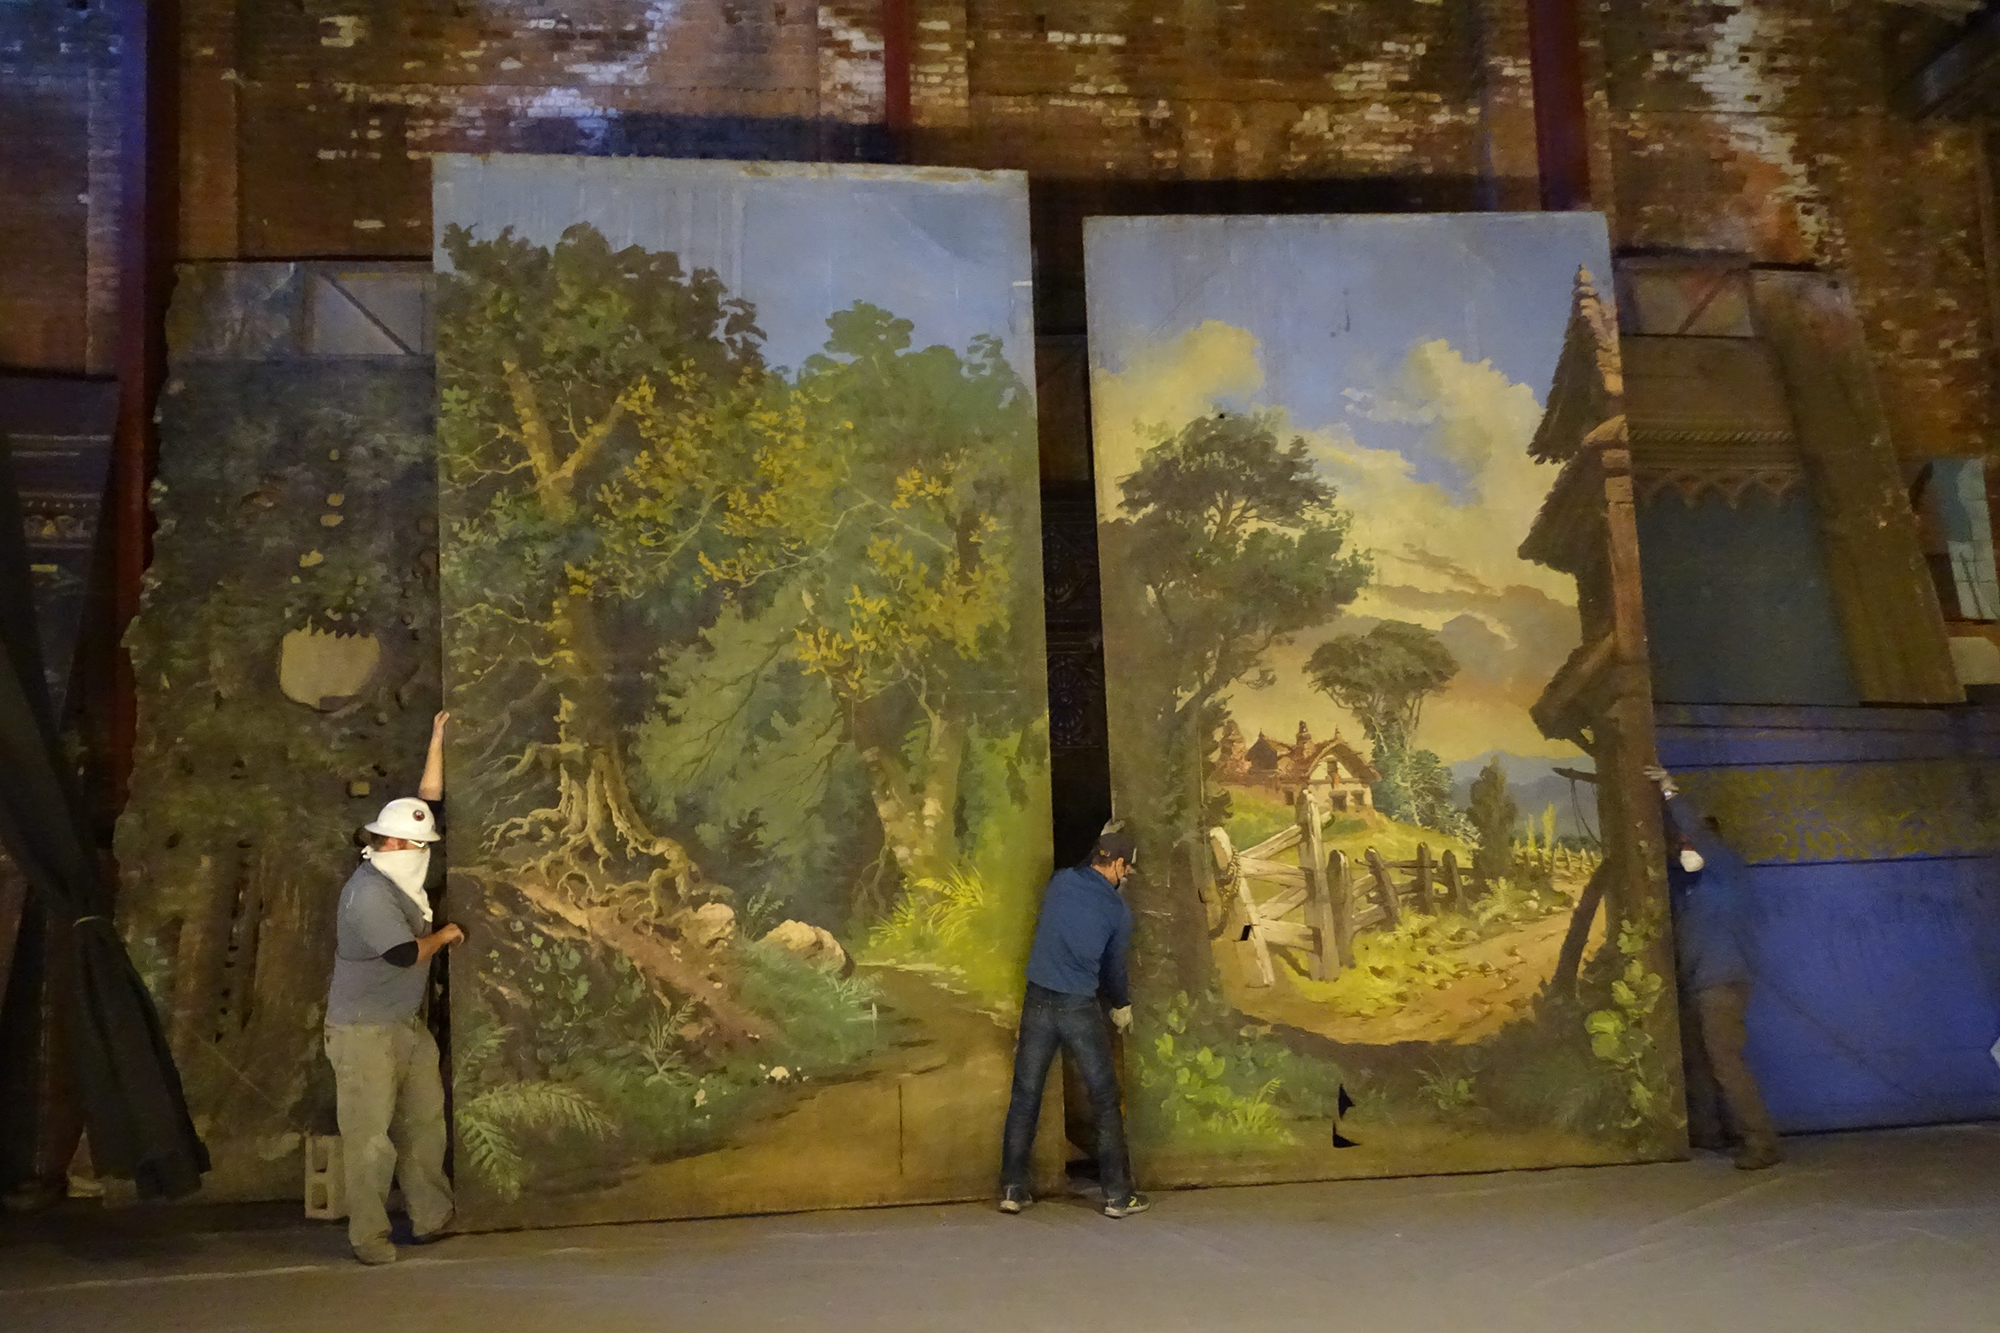 Panels from theatrical scenery found in the Tabor Opera House.